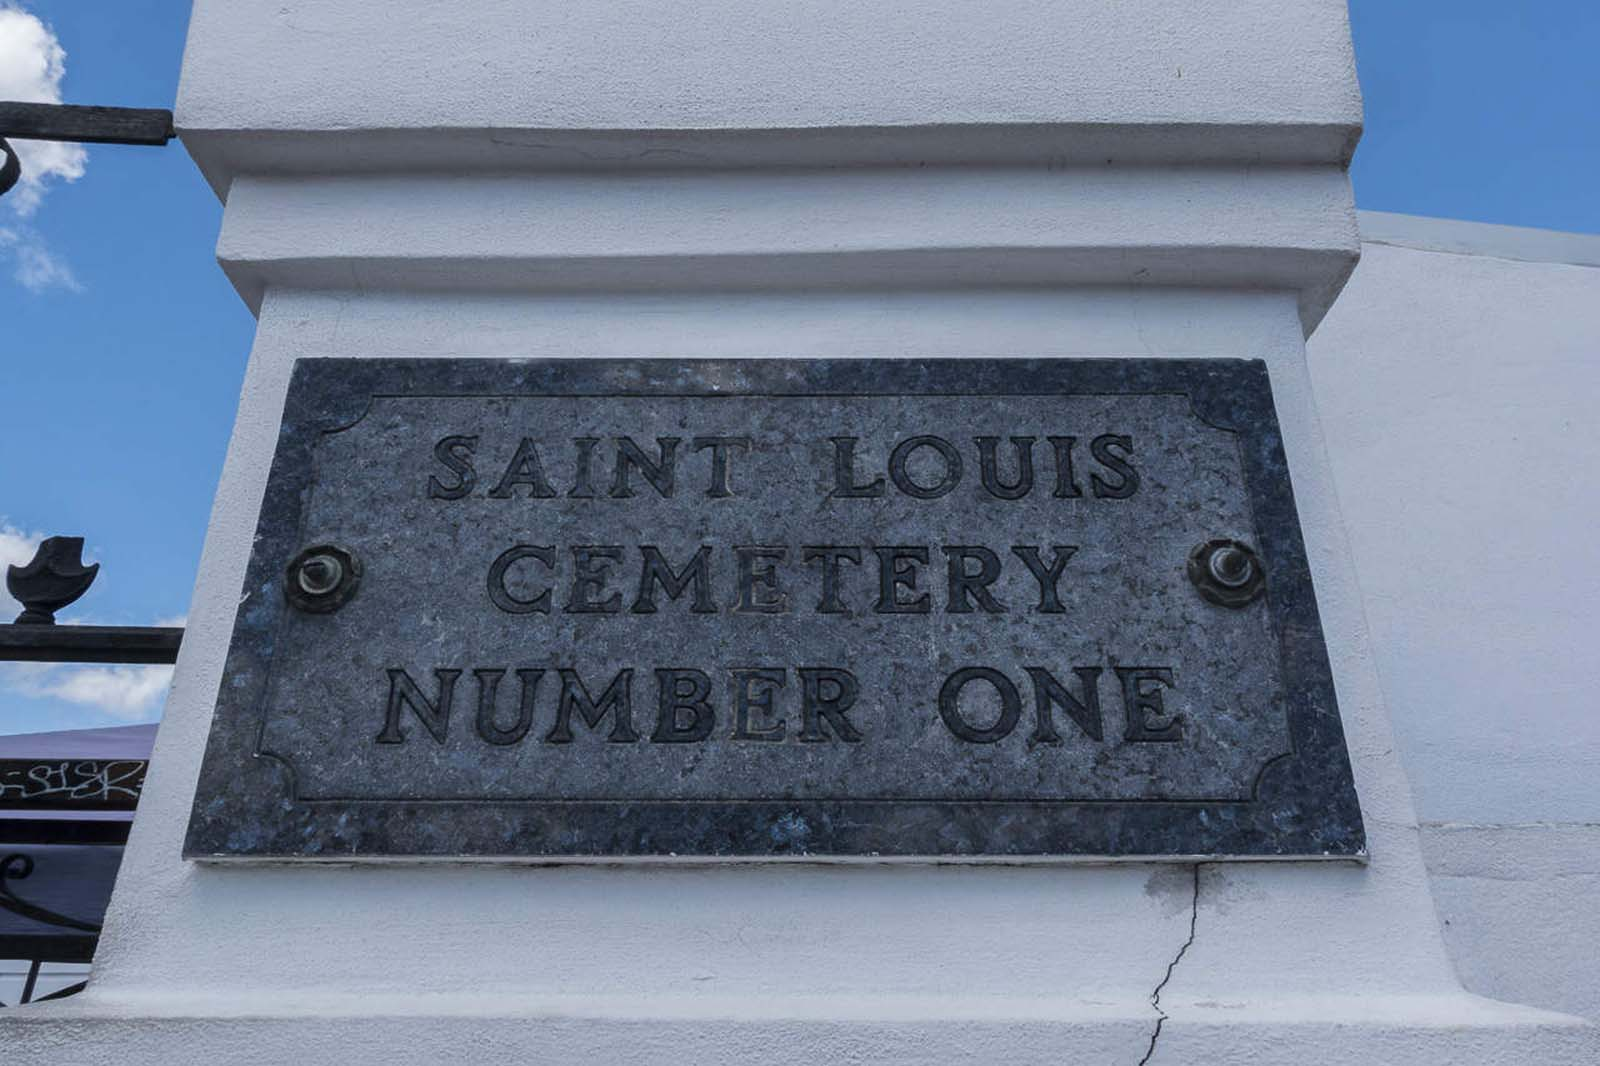 st louise cemetery number 1